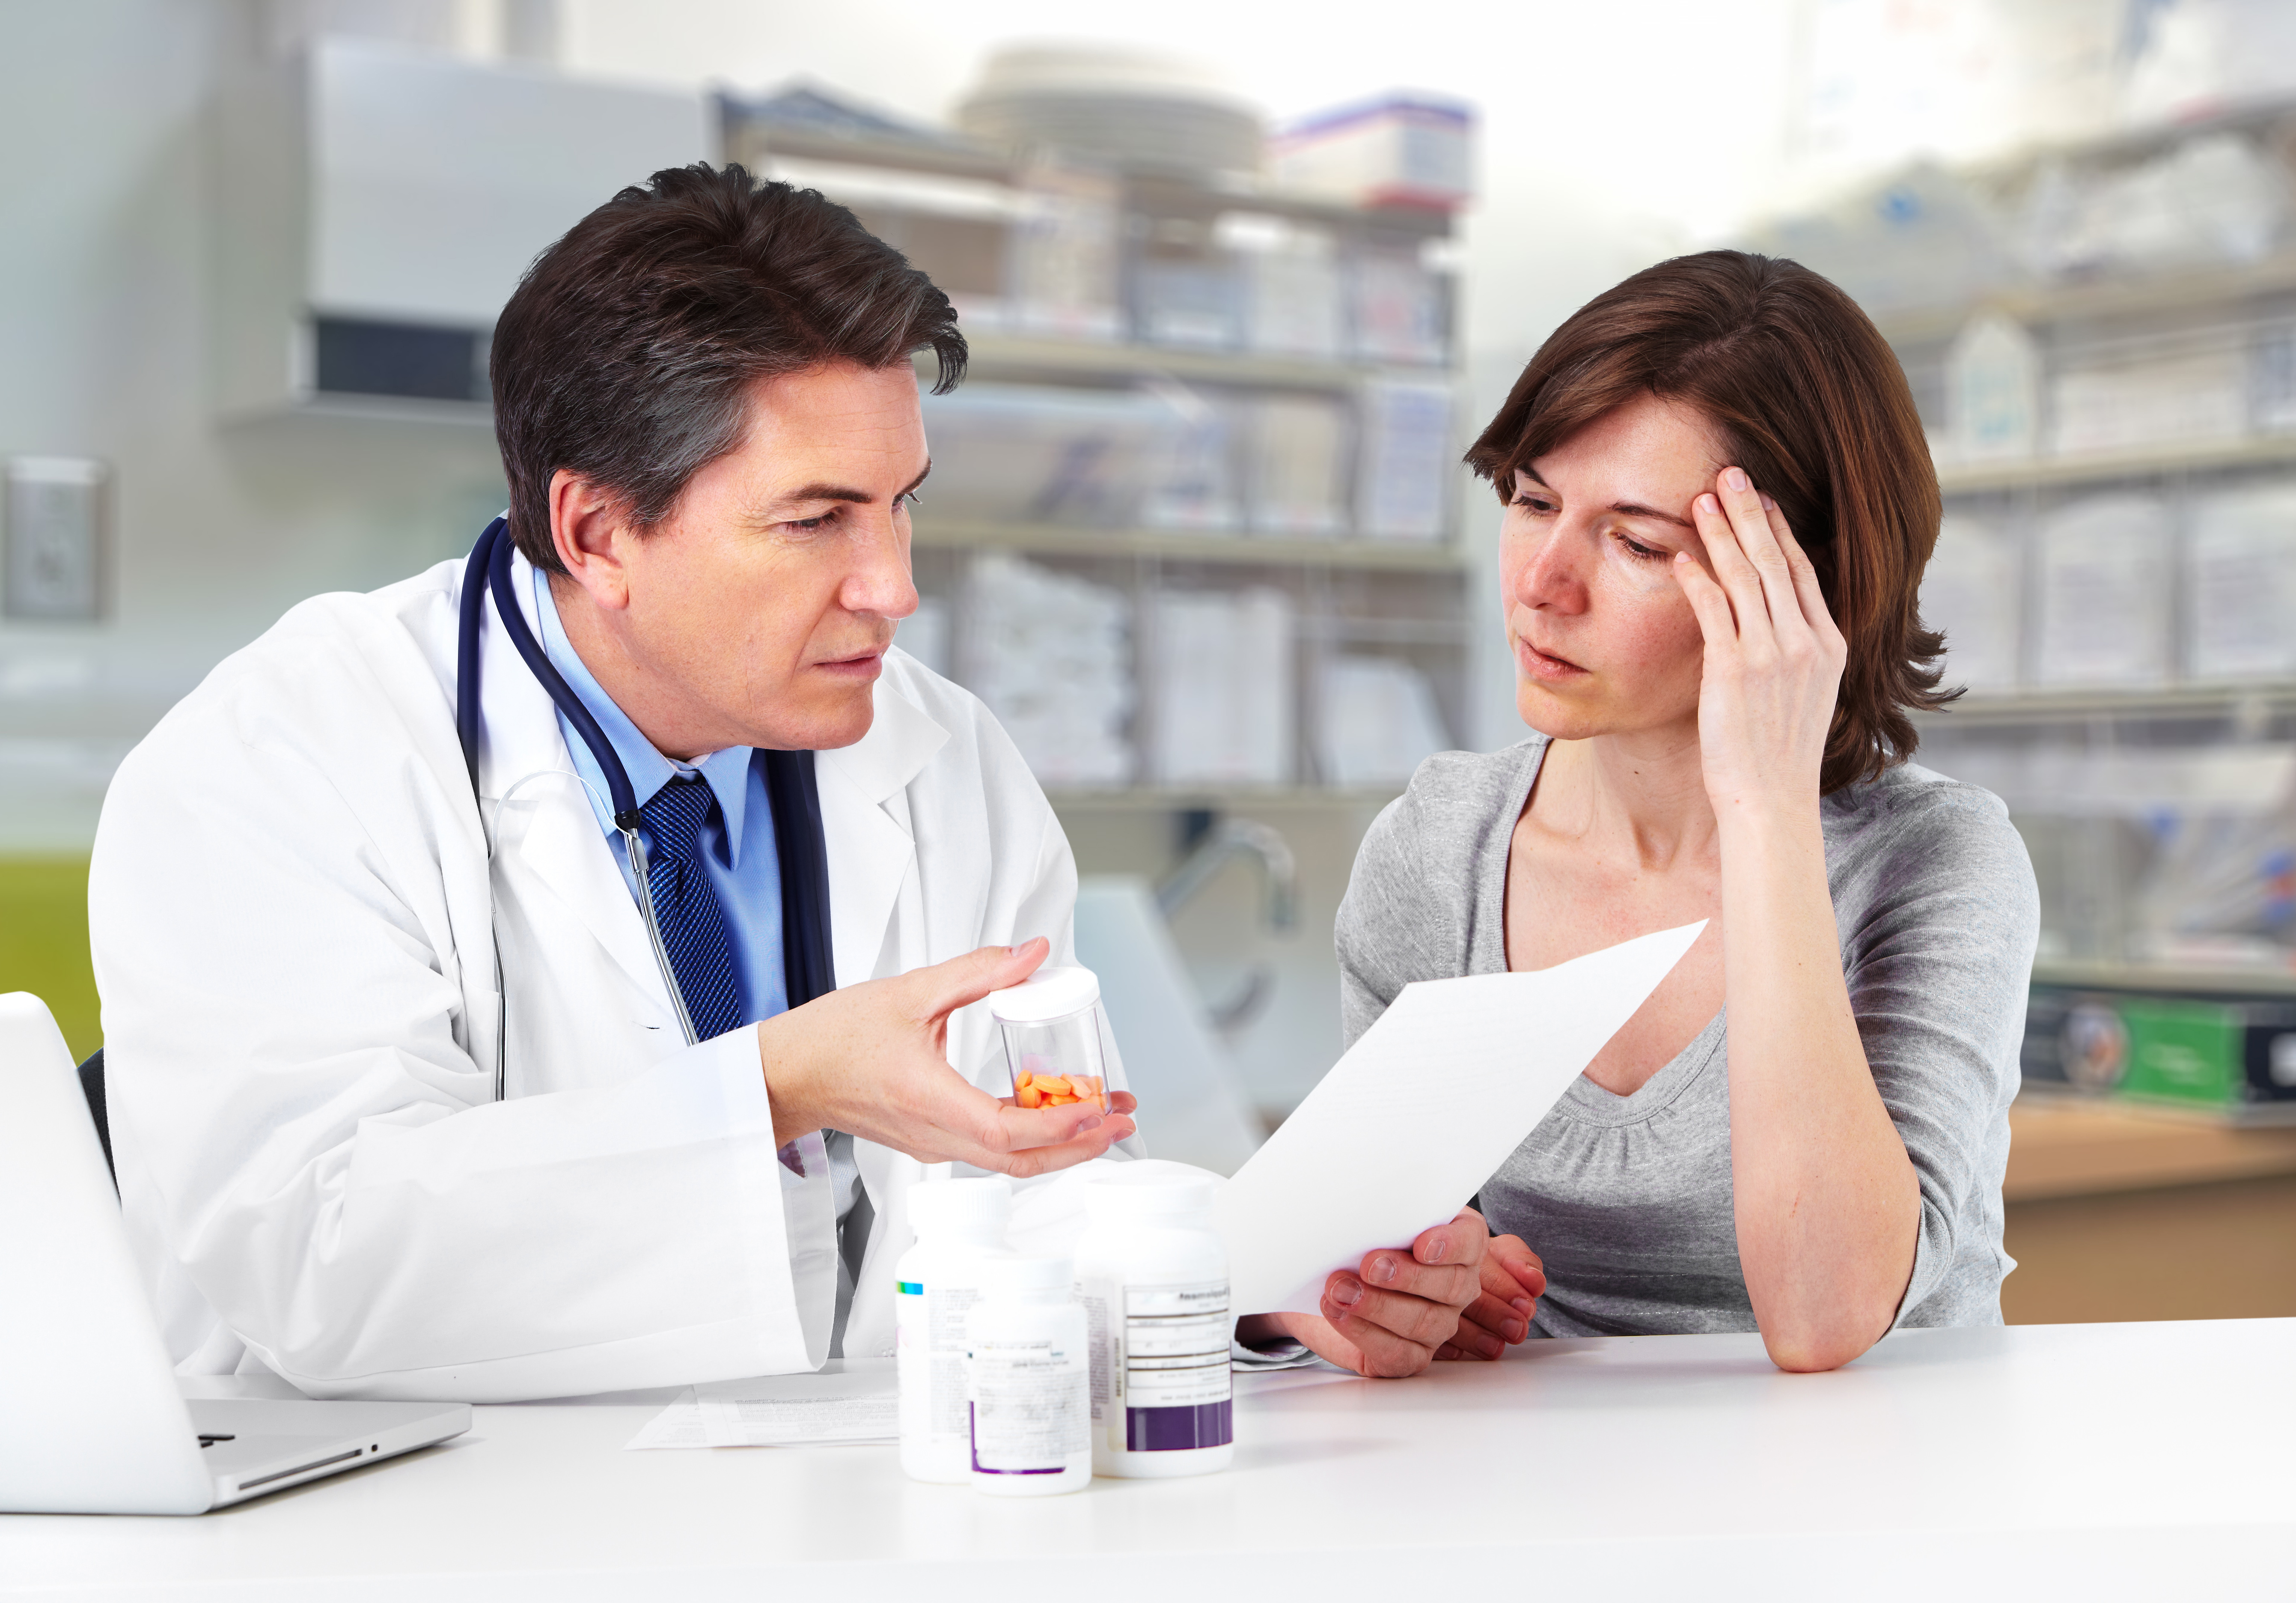 In-Person Contact is the Best Method of Destigmatizing Mental Health Conditions in Pharmacy Curricula